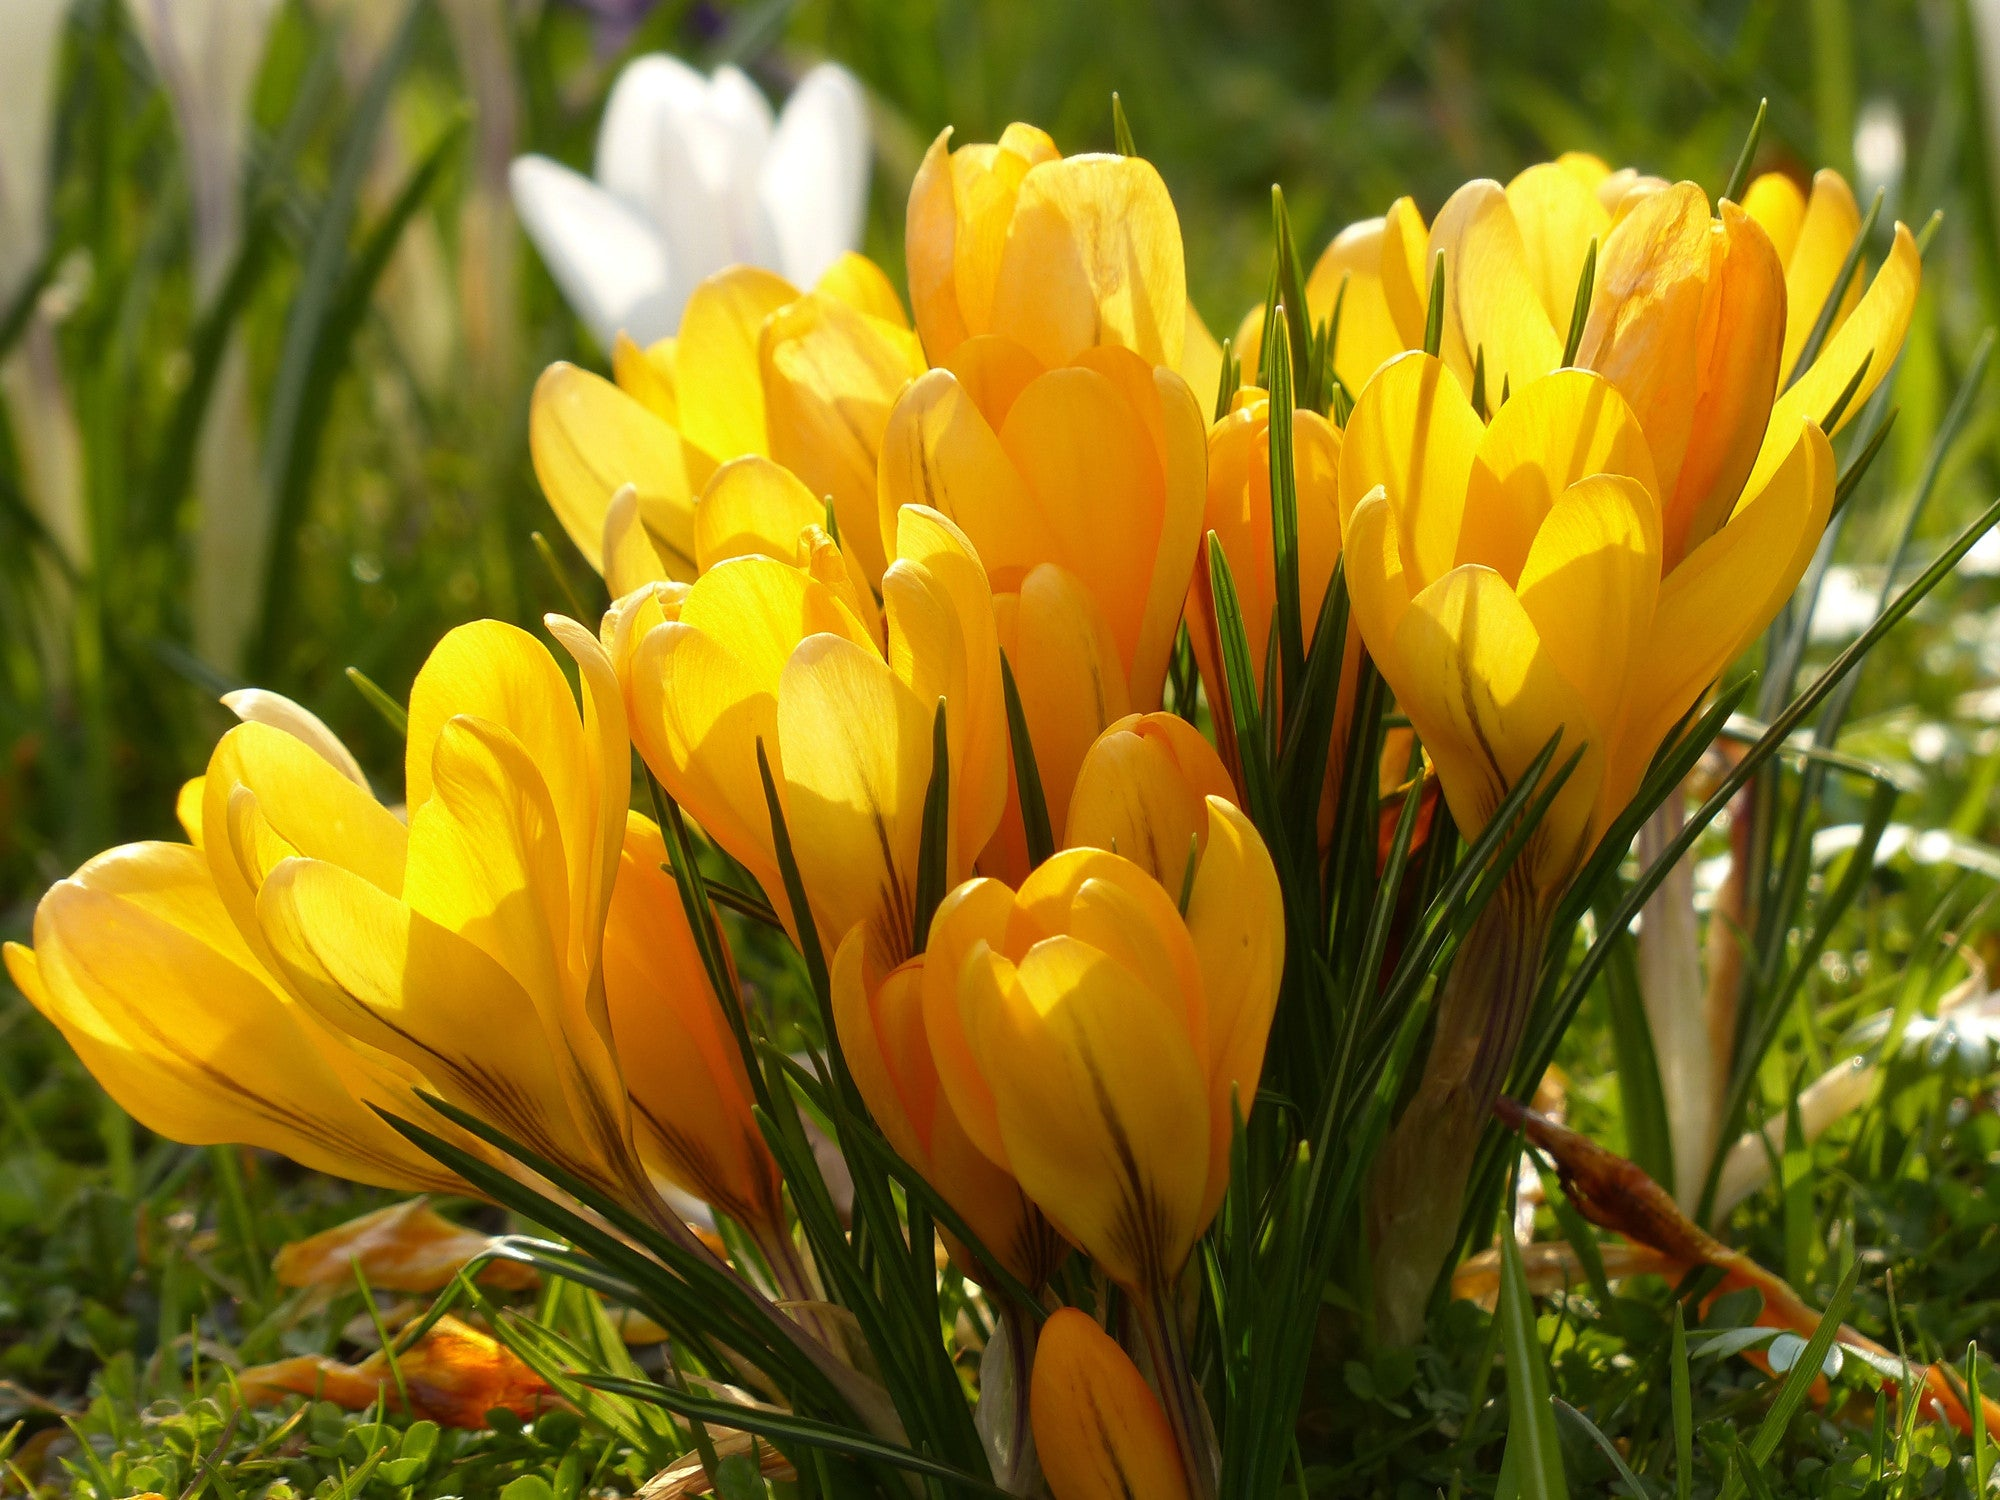 Crocus yellow flower bulbs dutchgrown crocus yellow top size bulbs yellow crocus spring flowers mightylinksfo